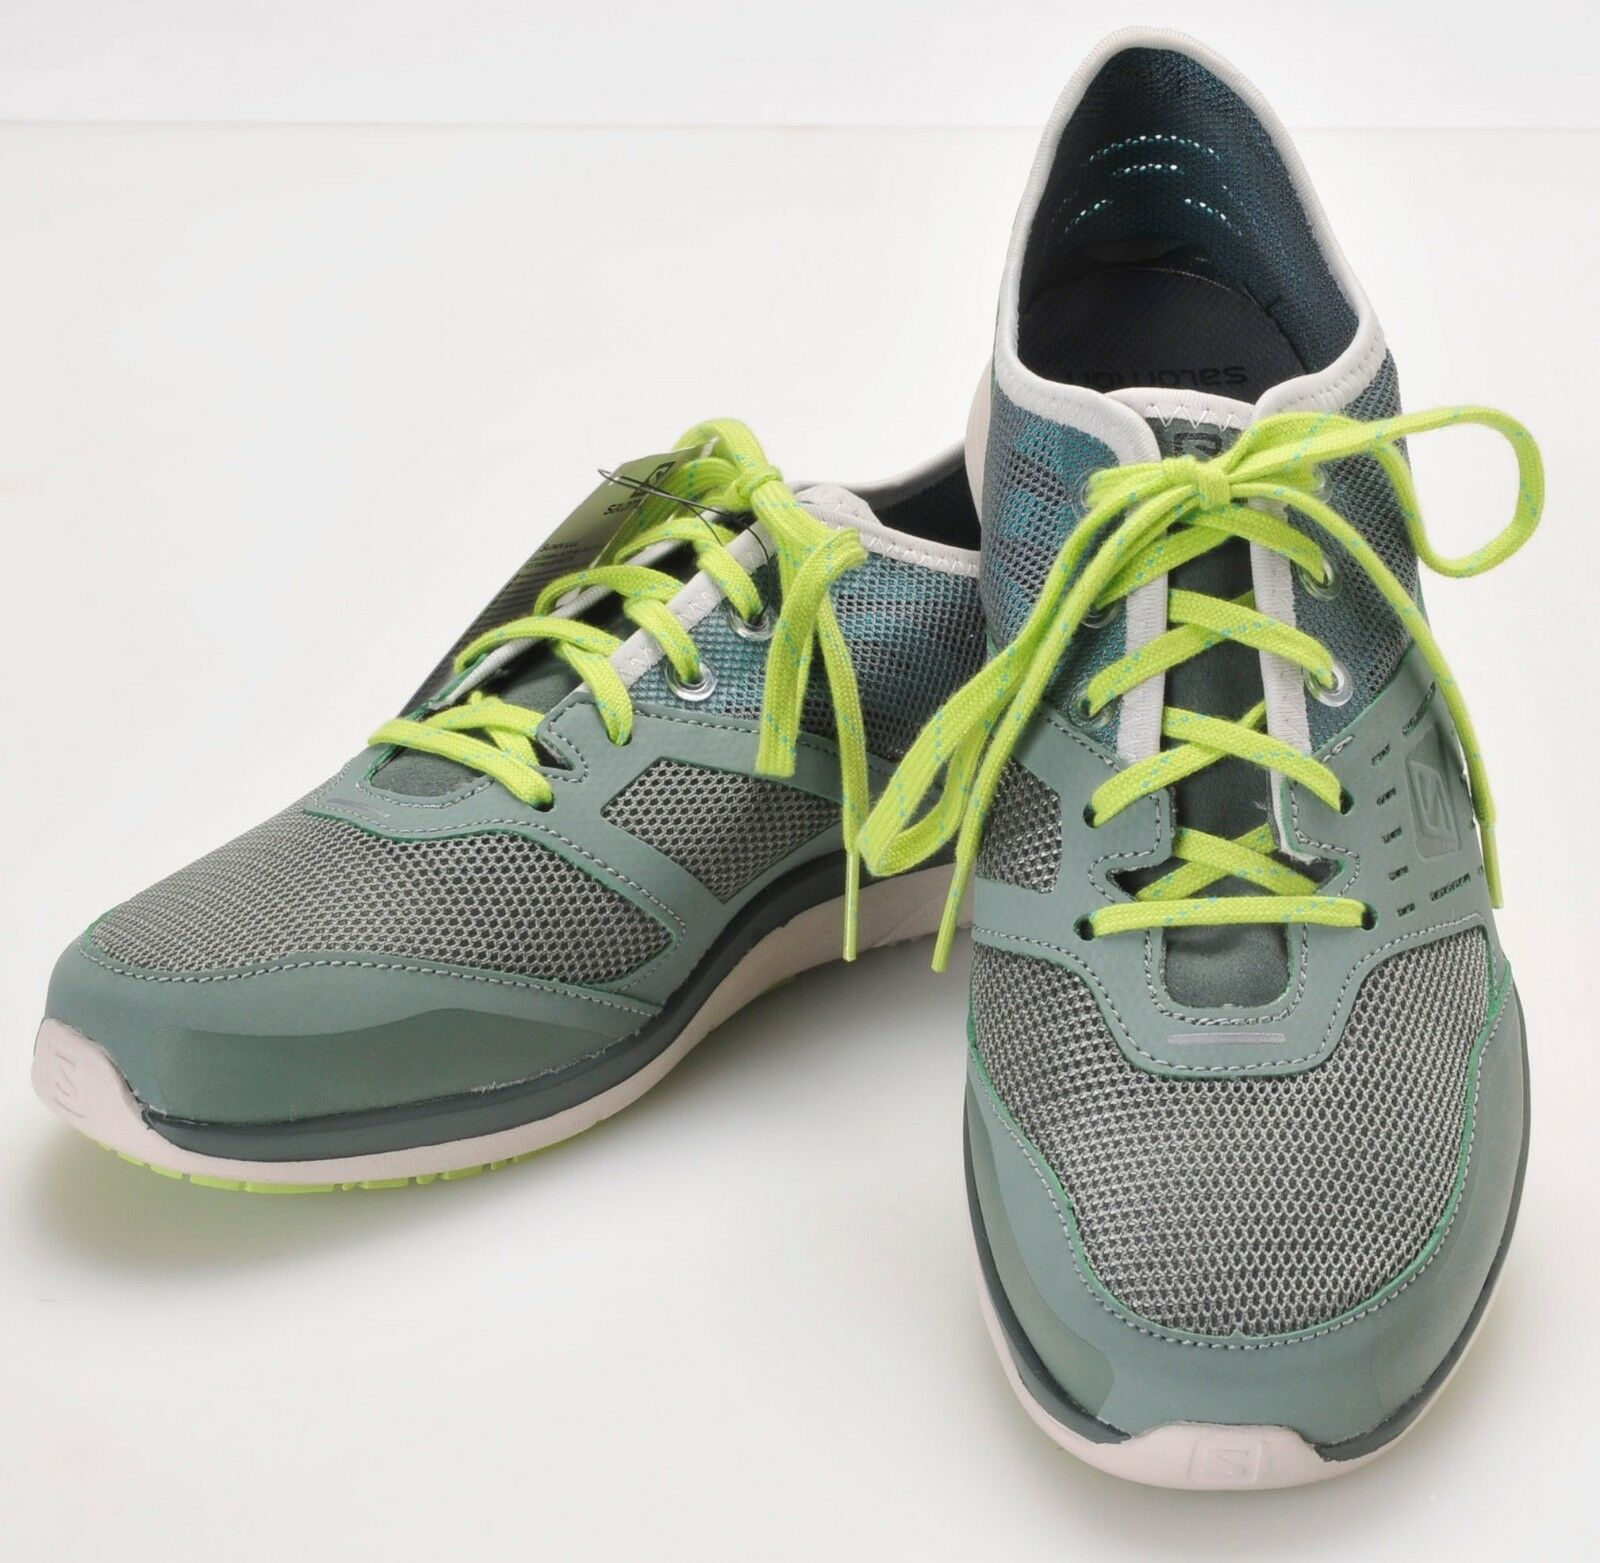 Salomon Cove W Light Athletic Shoes Women's 9 Moorea Green NEW w Tags Blue Green Moorea ae9405